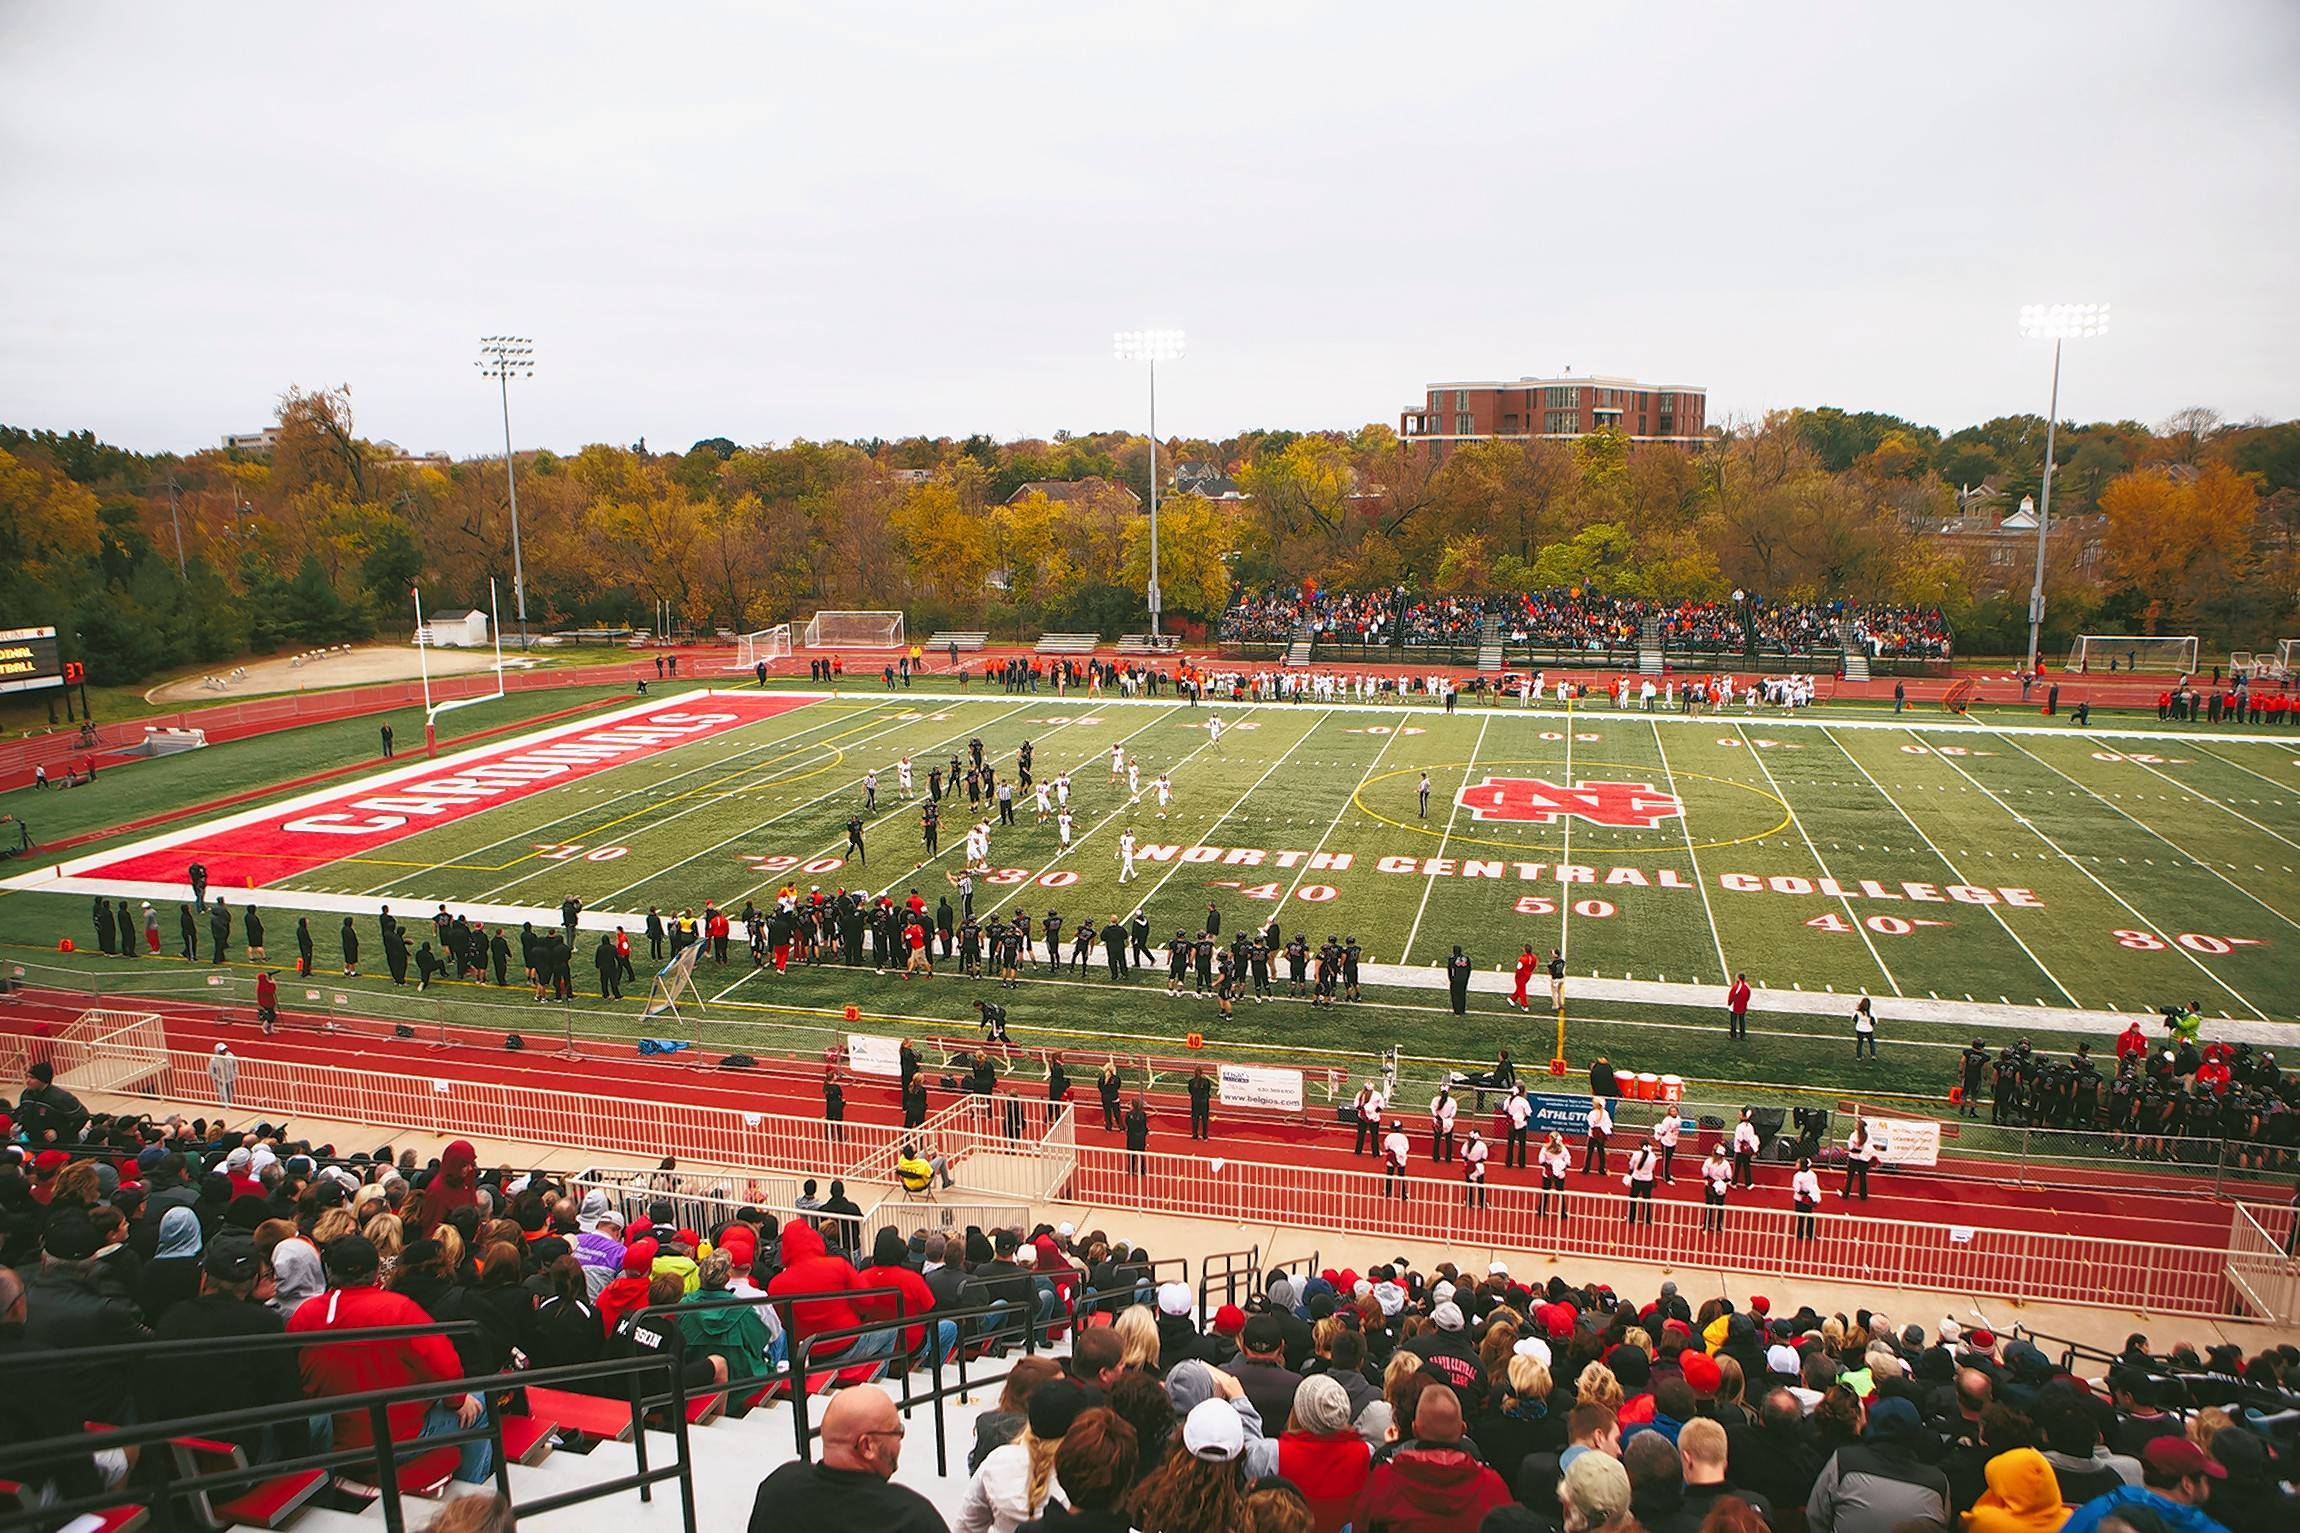 The biggest CCIW matchup of the season will kick off at 7 p.m. Saturday when the North Central Cardinals (5-0) host the Wheaton College Thunder (6-0) at Benedetti-Wehrli Stadium in Naperville. The two Division 3 powers will battle for the Little Brass Bell trophy.